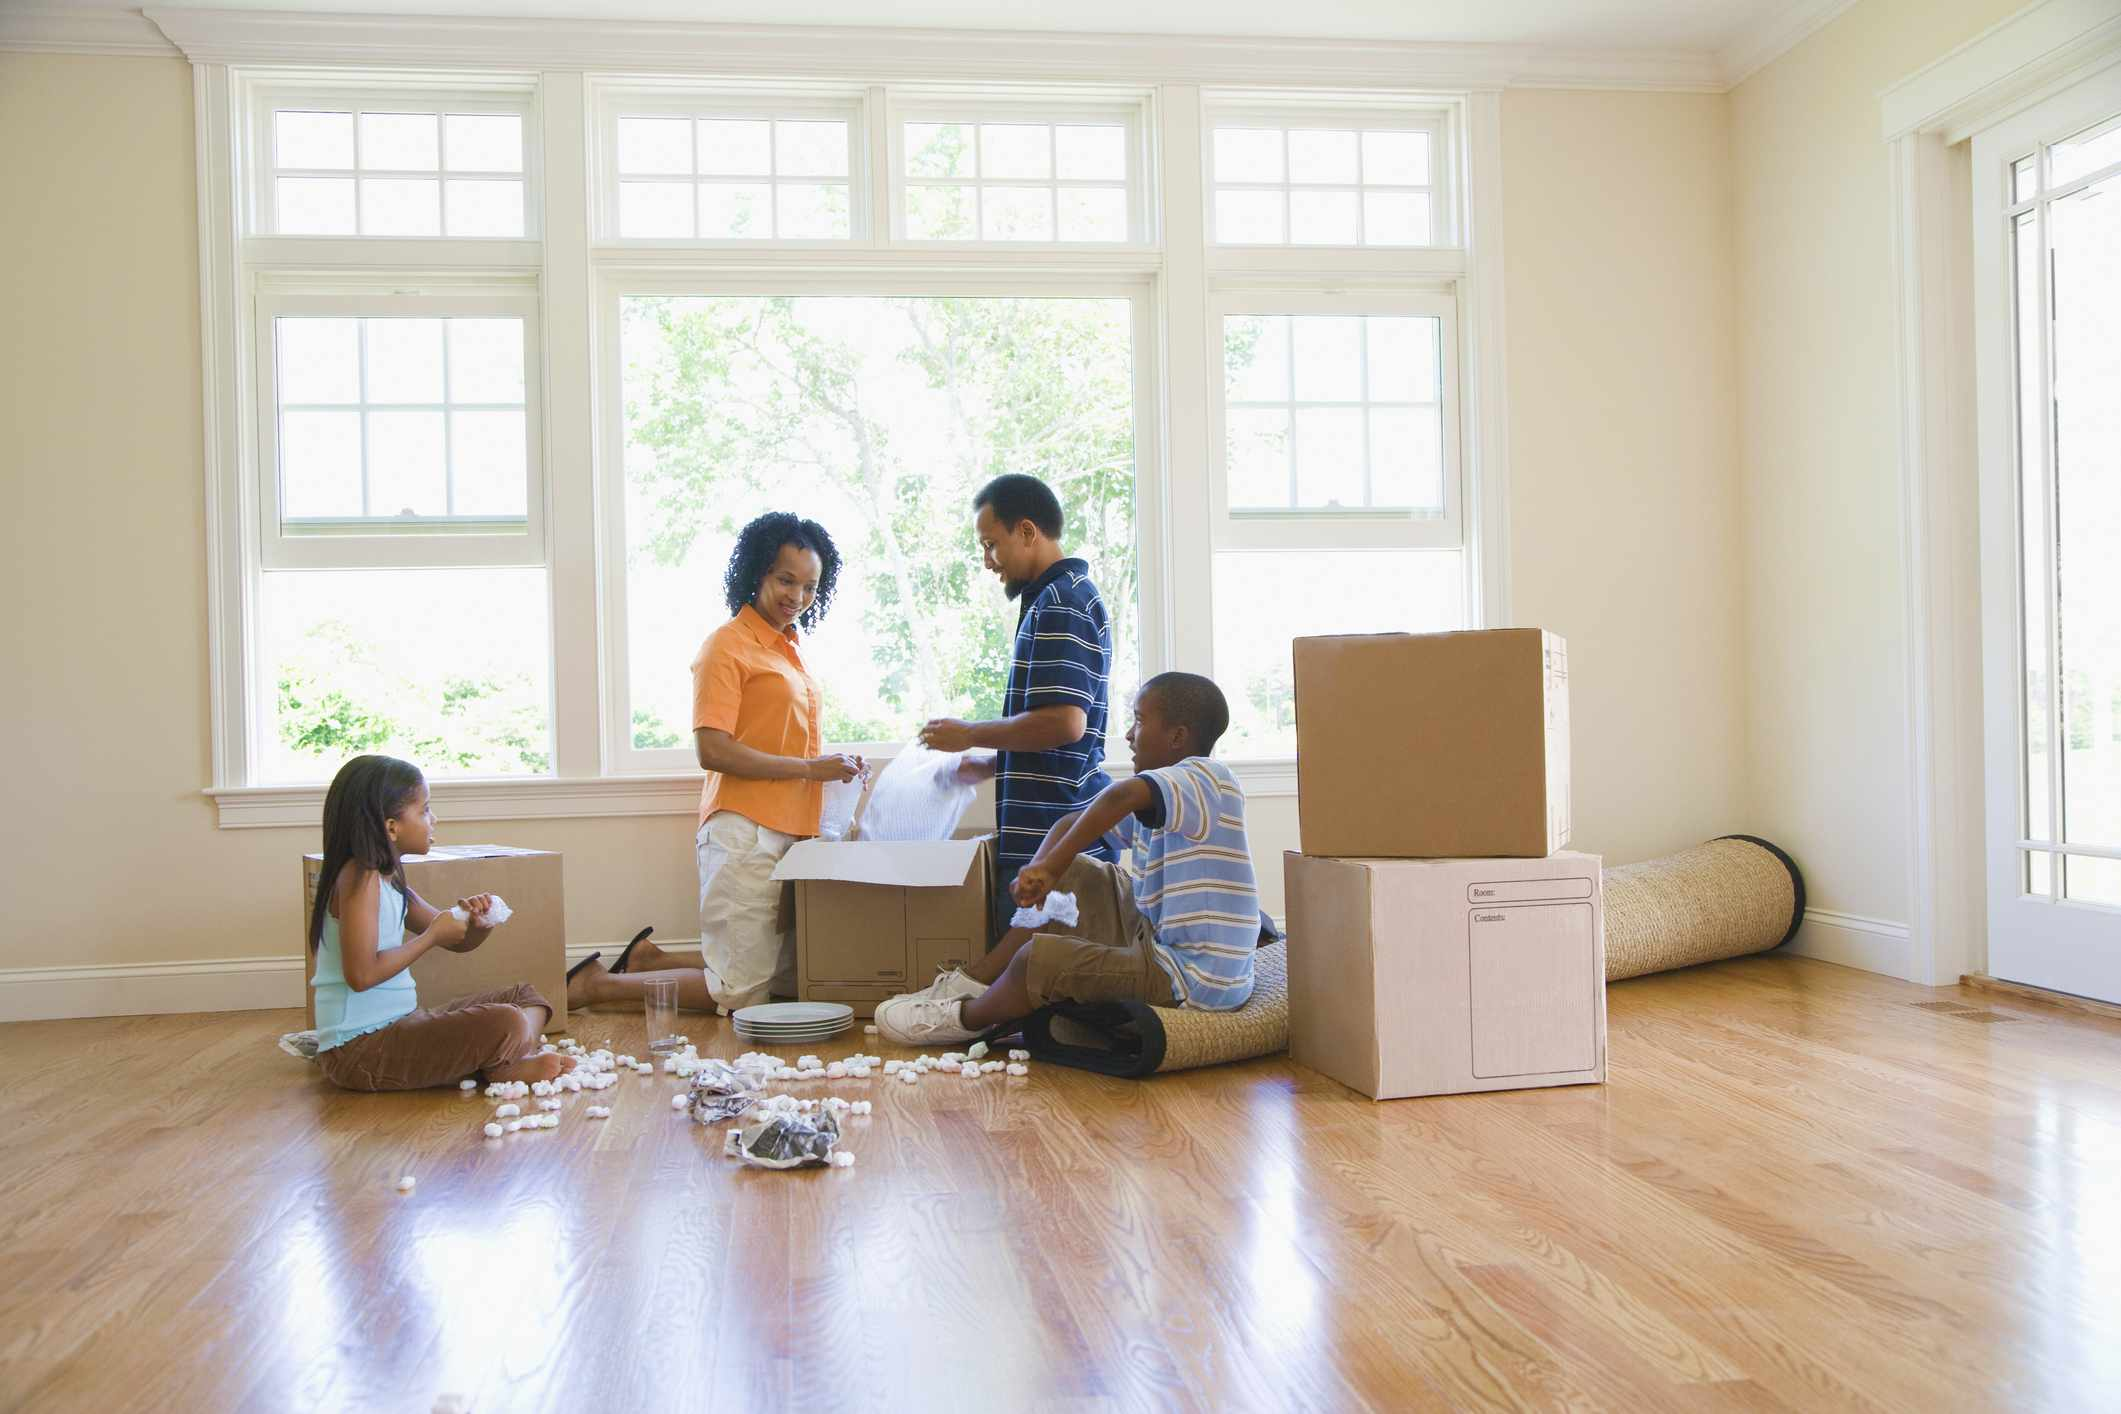 Family in an empty room with moving boxes